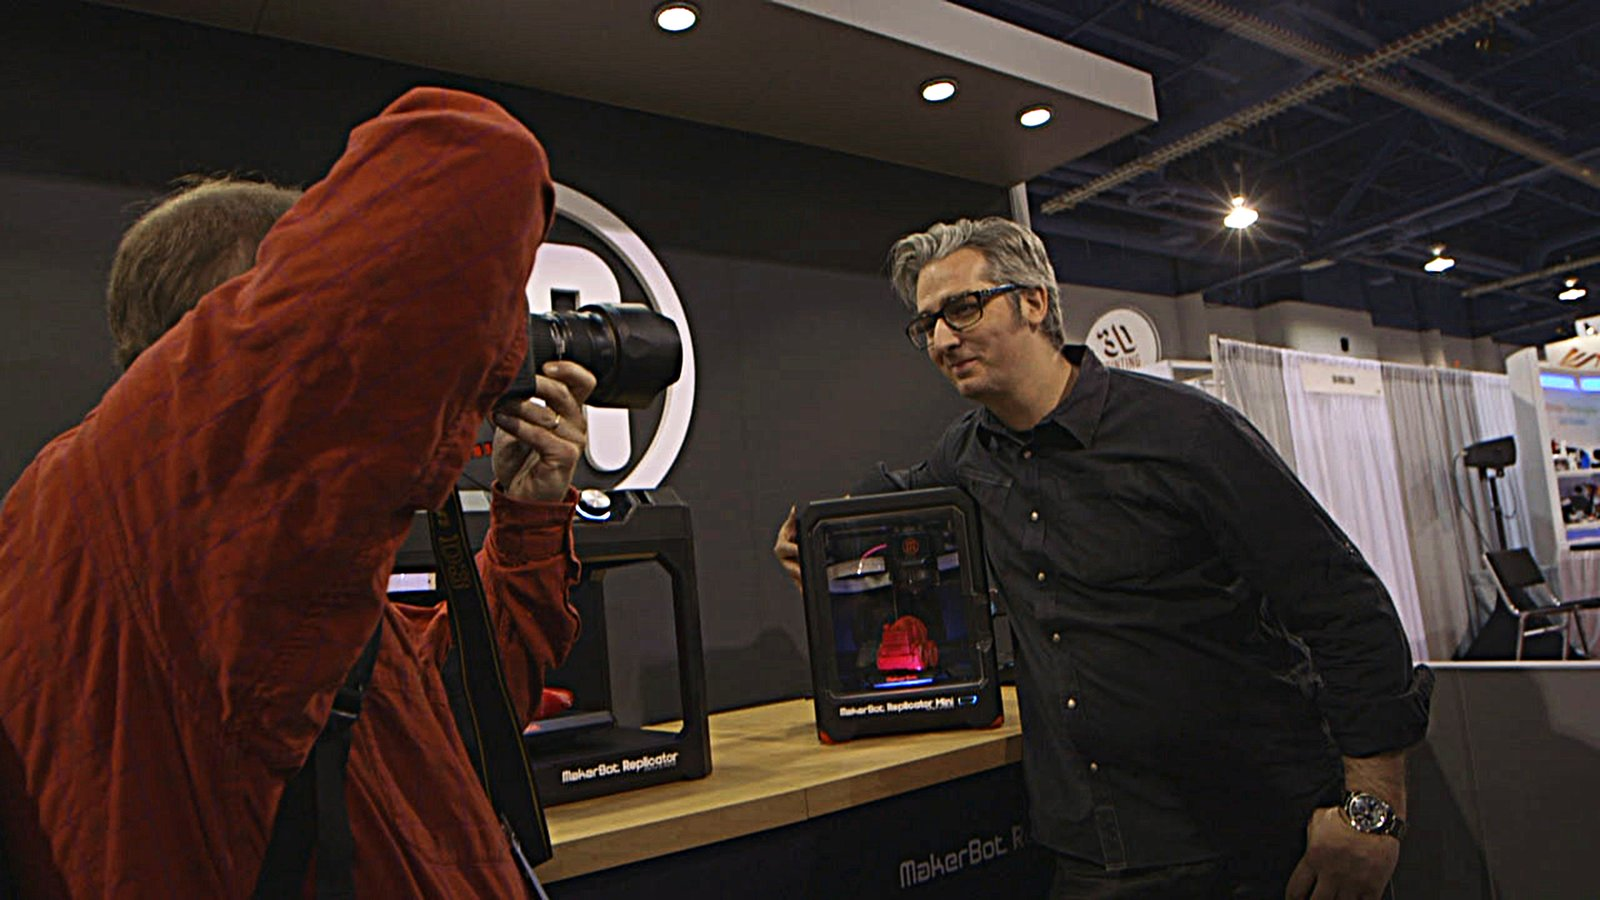 """Bre Pettis of Makerbot   Co-founder and CEO of Brooklyn's MakerBot, the charismatic Pettis once told WIRED magazine that one of his printers' designs was like """"Darth Vader driving Knight Rider's KITT car while being airlifted by a Nighthawk spy plane.""""  Photo 3 of 4 in 3D Printing Documentary at SXSW"""